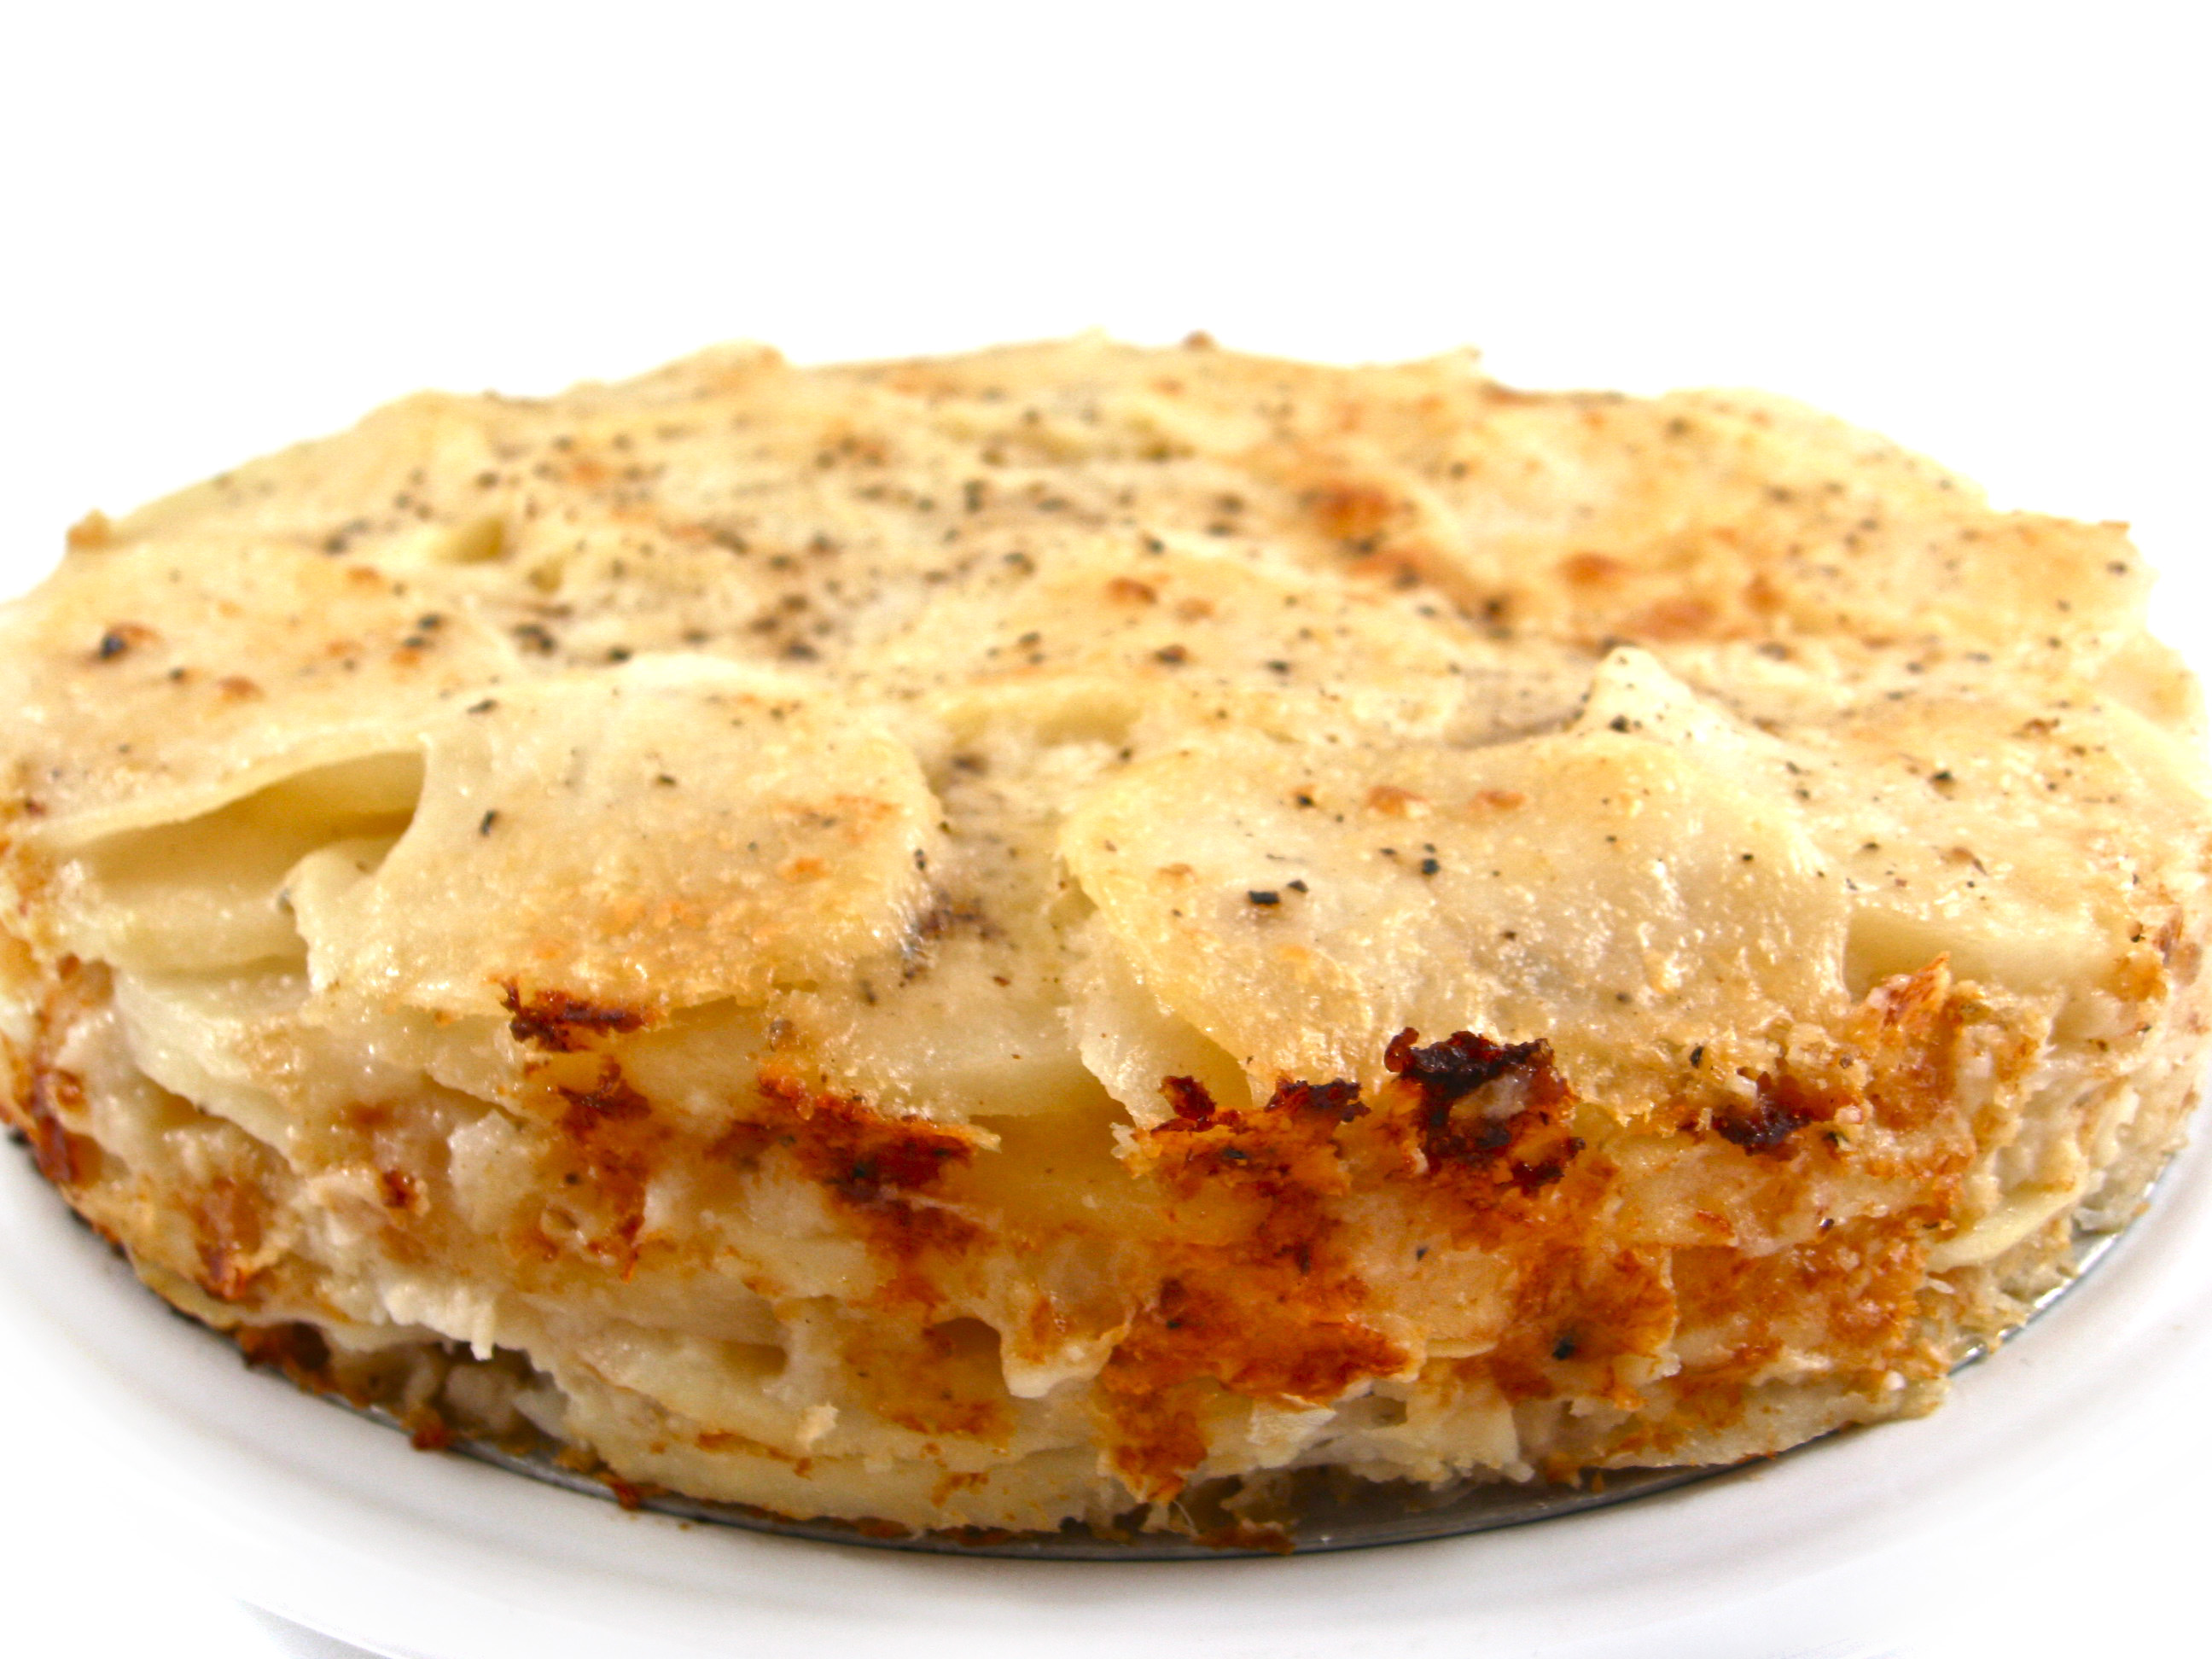 POTATOES AU GRATIN: In nonstick 9 ... baking pan. Combine potatoes ...